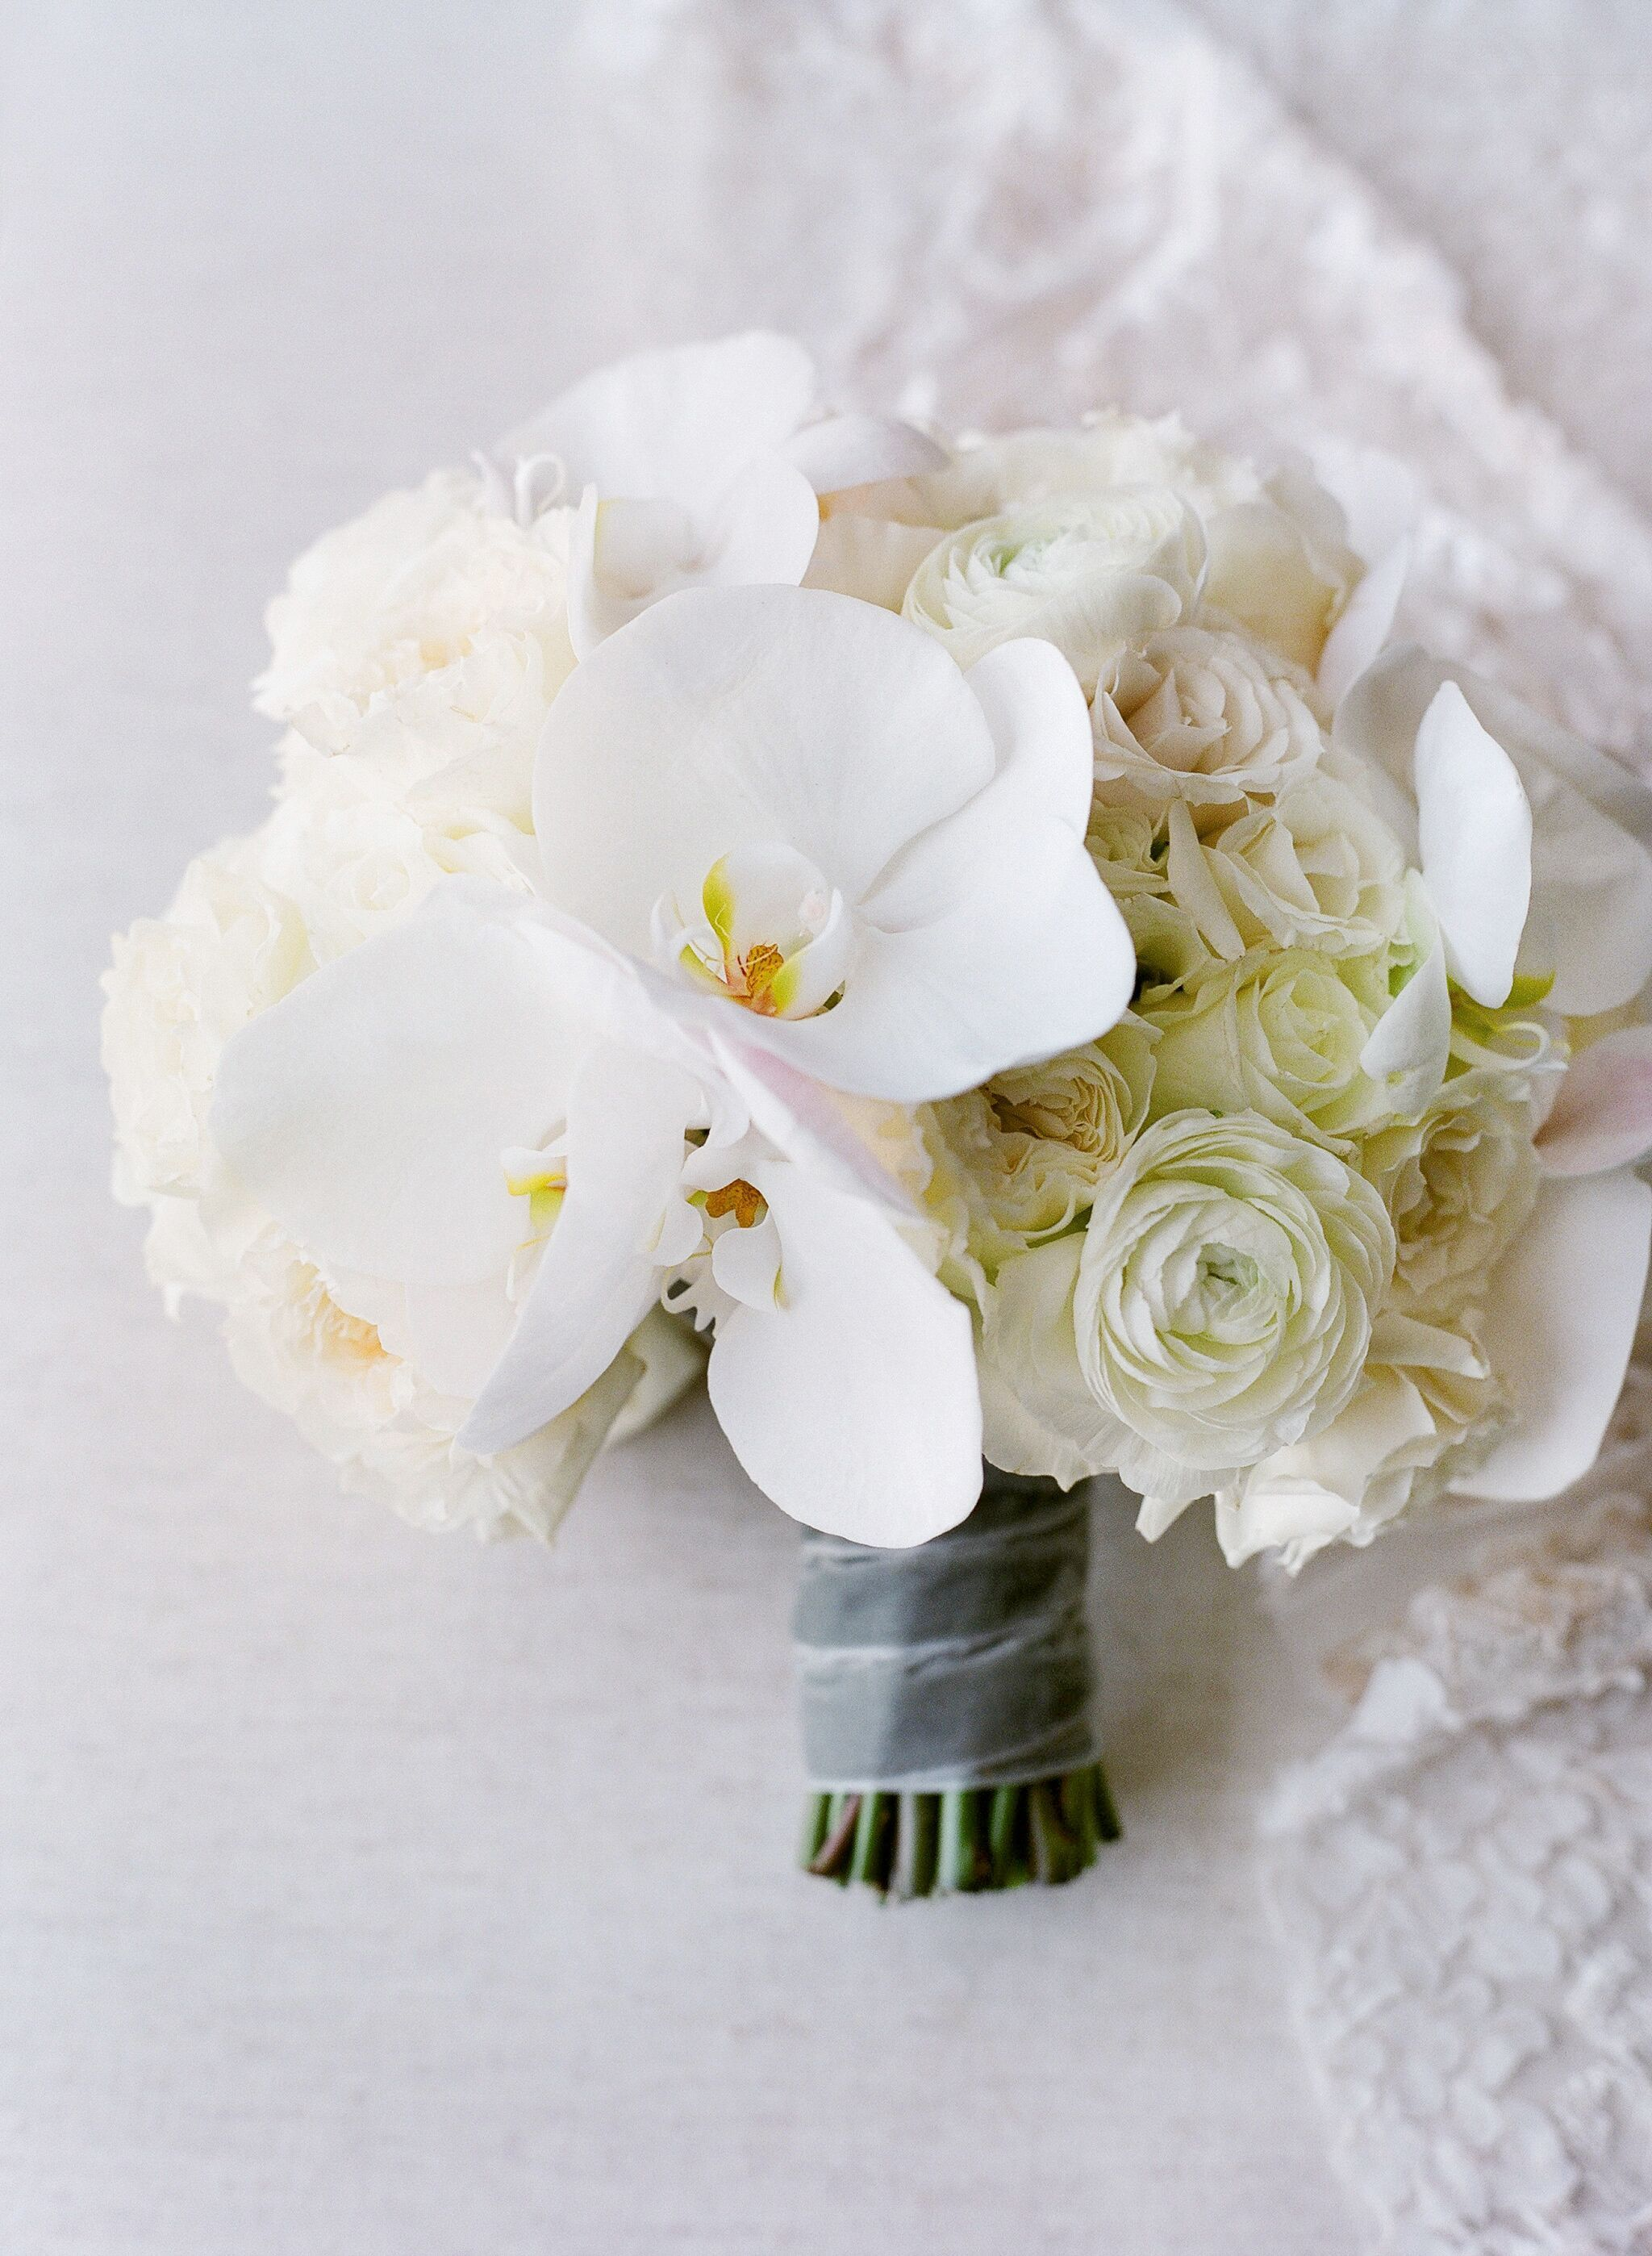 Elegant White Bouquet with Orchids and Roses in 2020